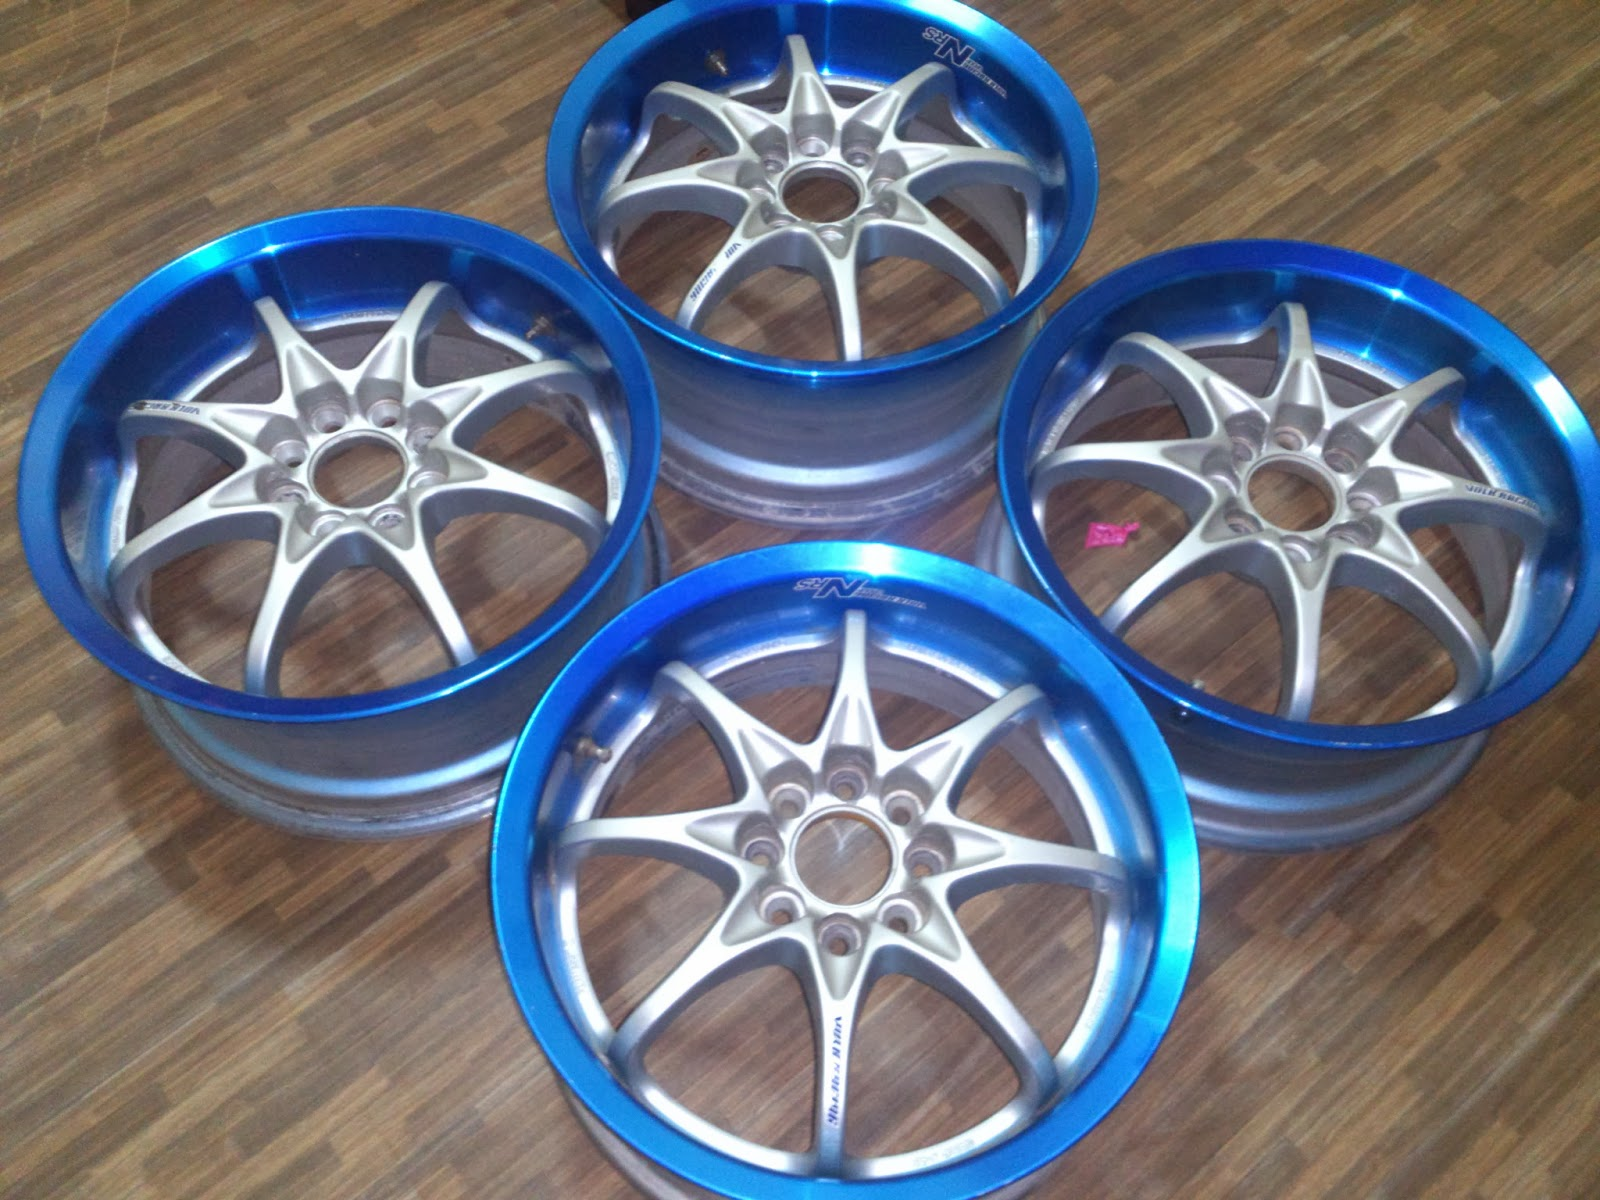 Rims for sale (sold)